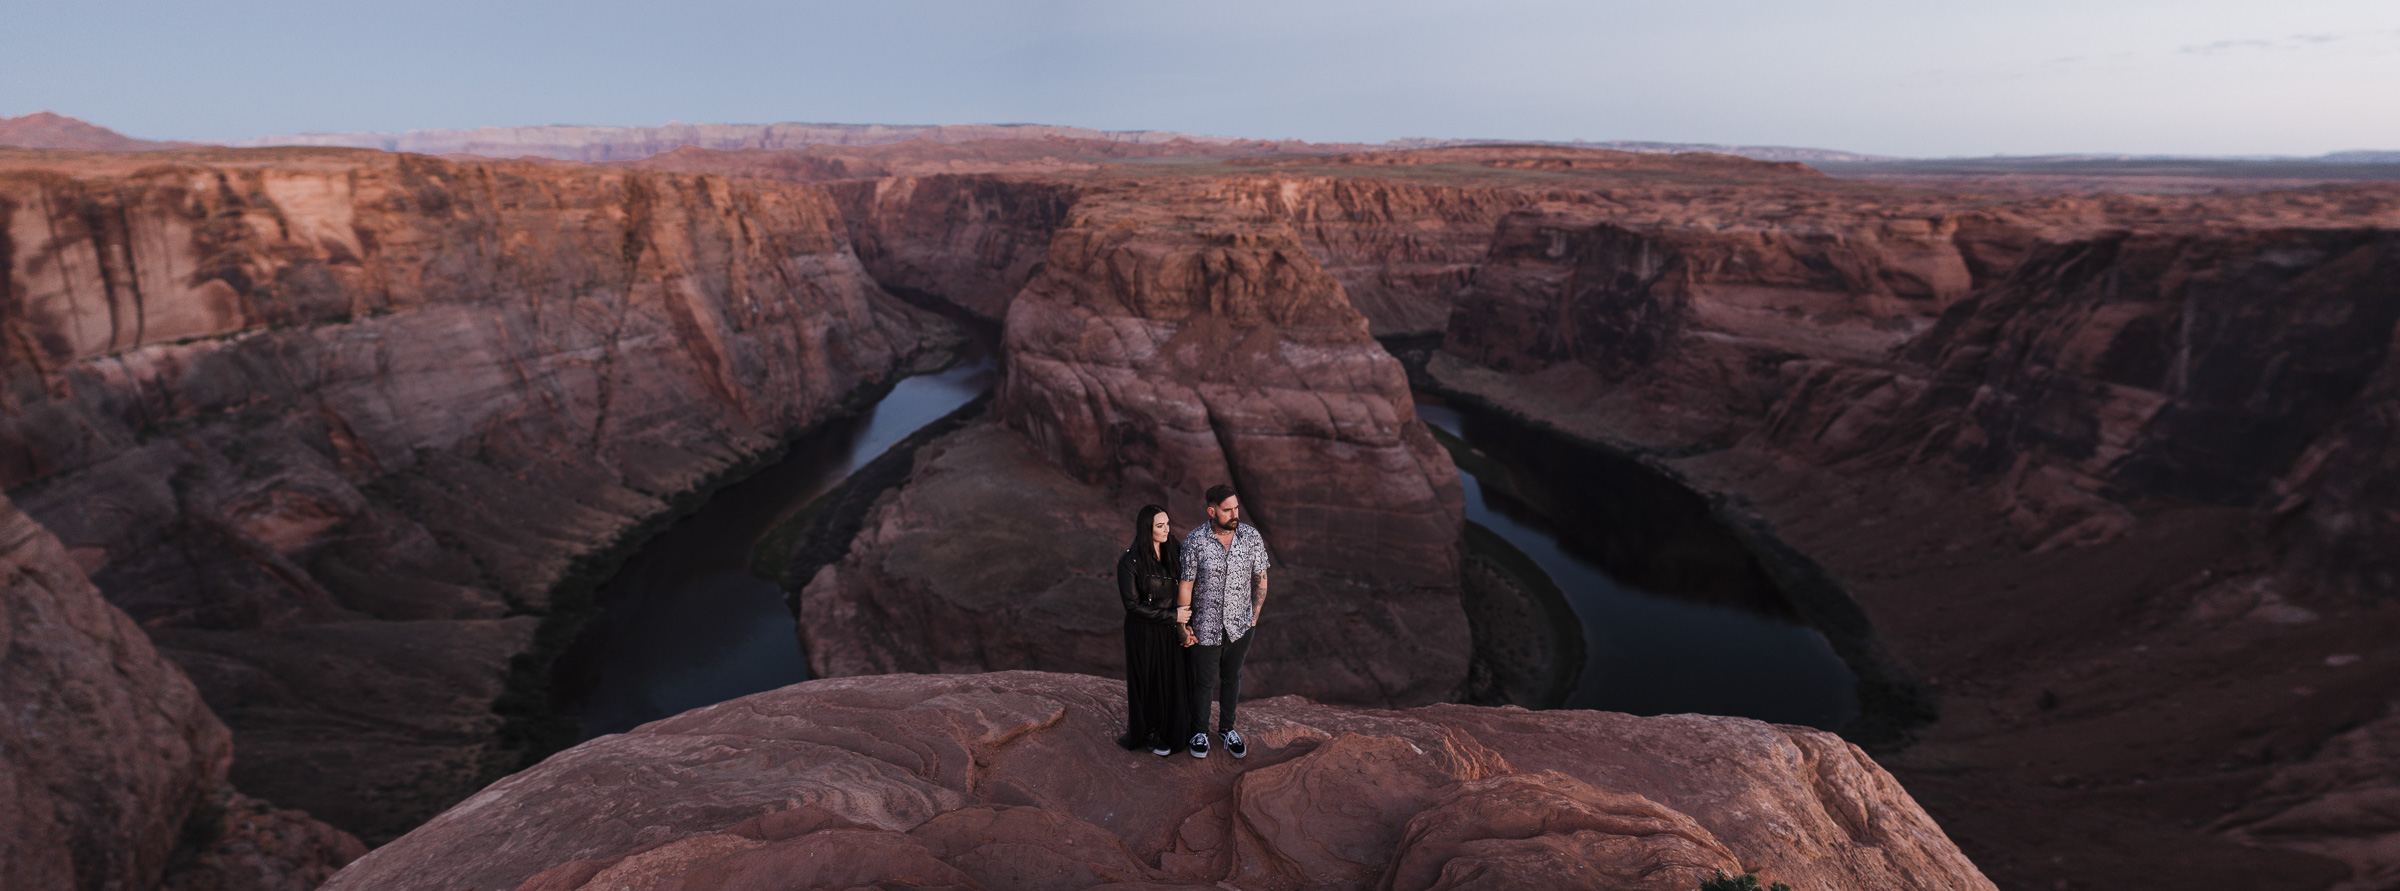 Stevie_Jake_Horshoe_Bend_USA_Couple_Photographer-11.jpg